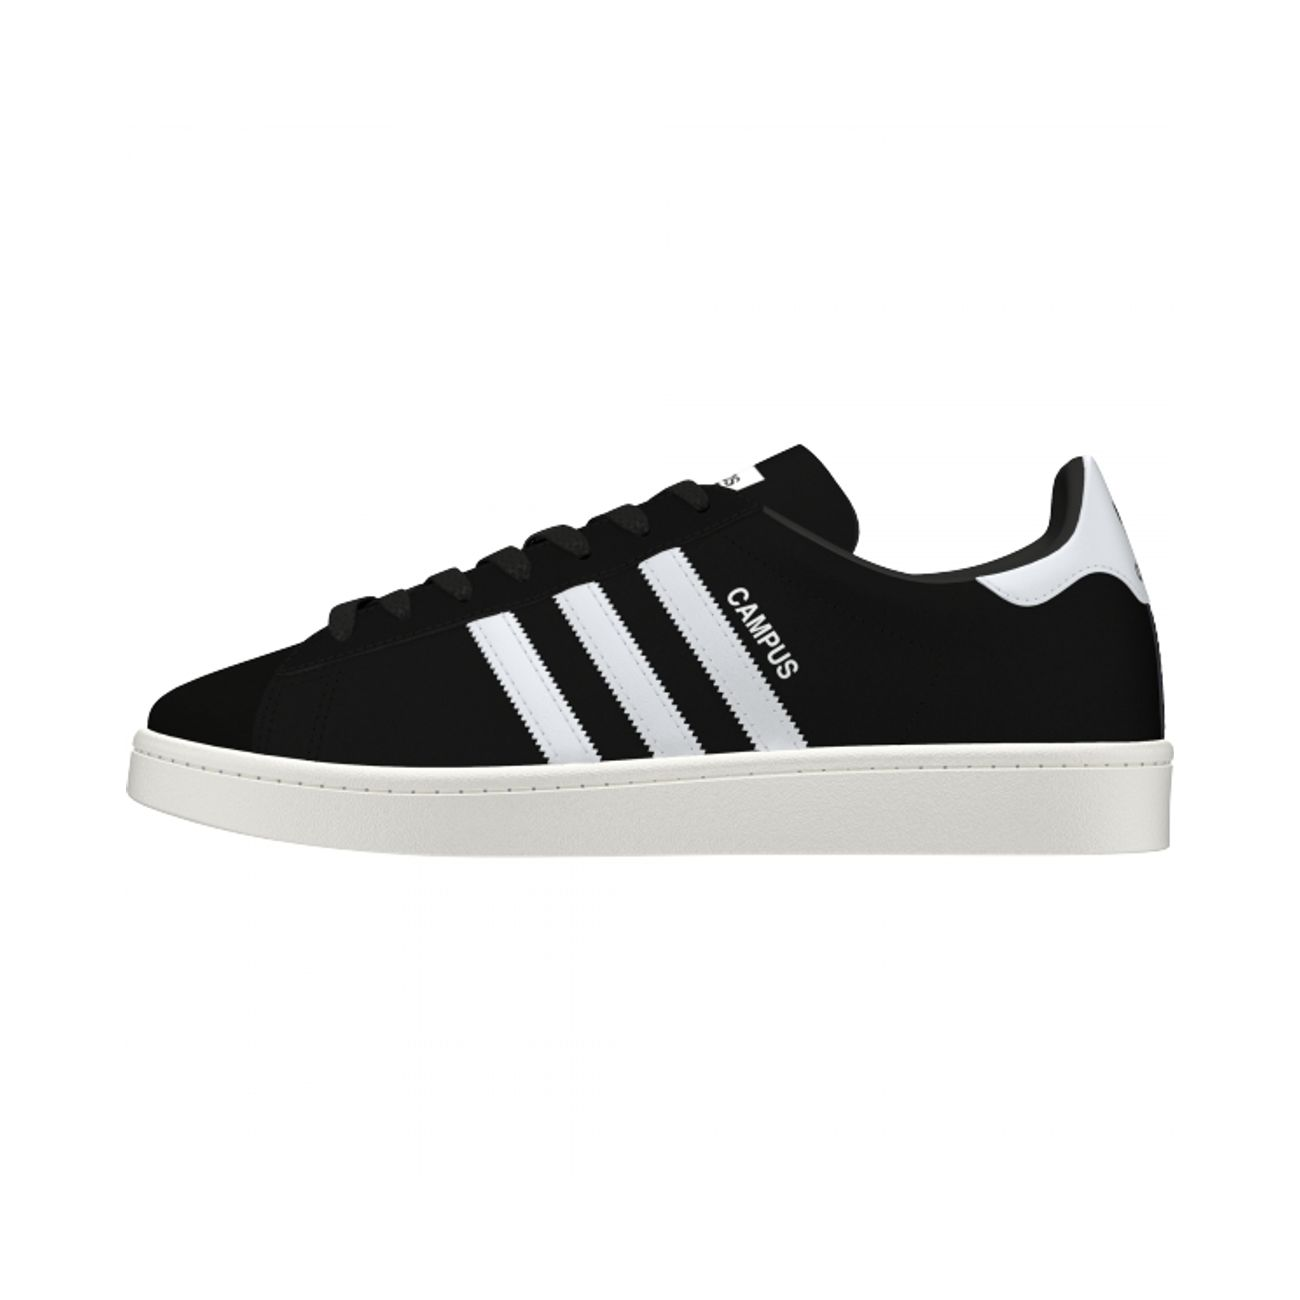 Campus ModeLifestyle Homme Homme Adidas Campus ModeLifestyle Homme Adidas Campus Adidas ModeLifestyle ModeLifestyle F1lKJc